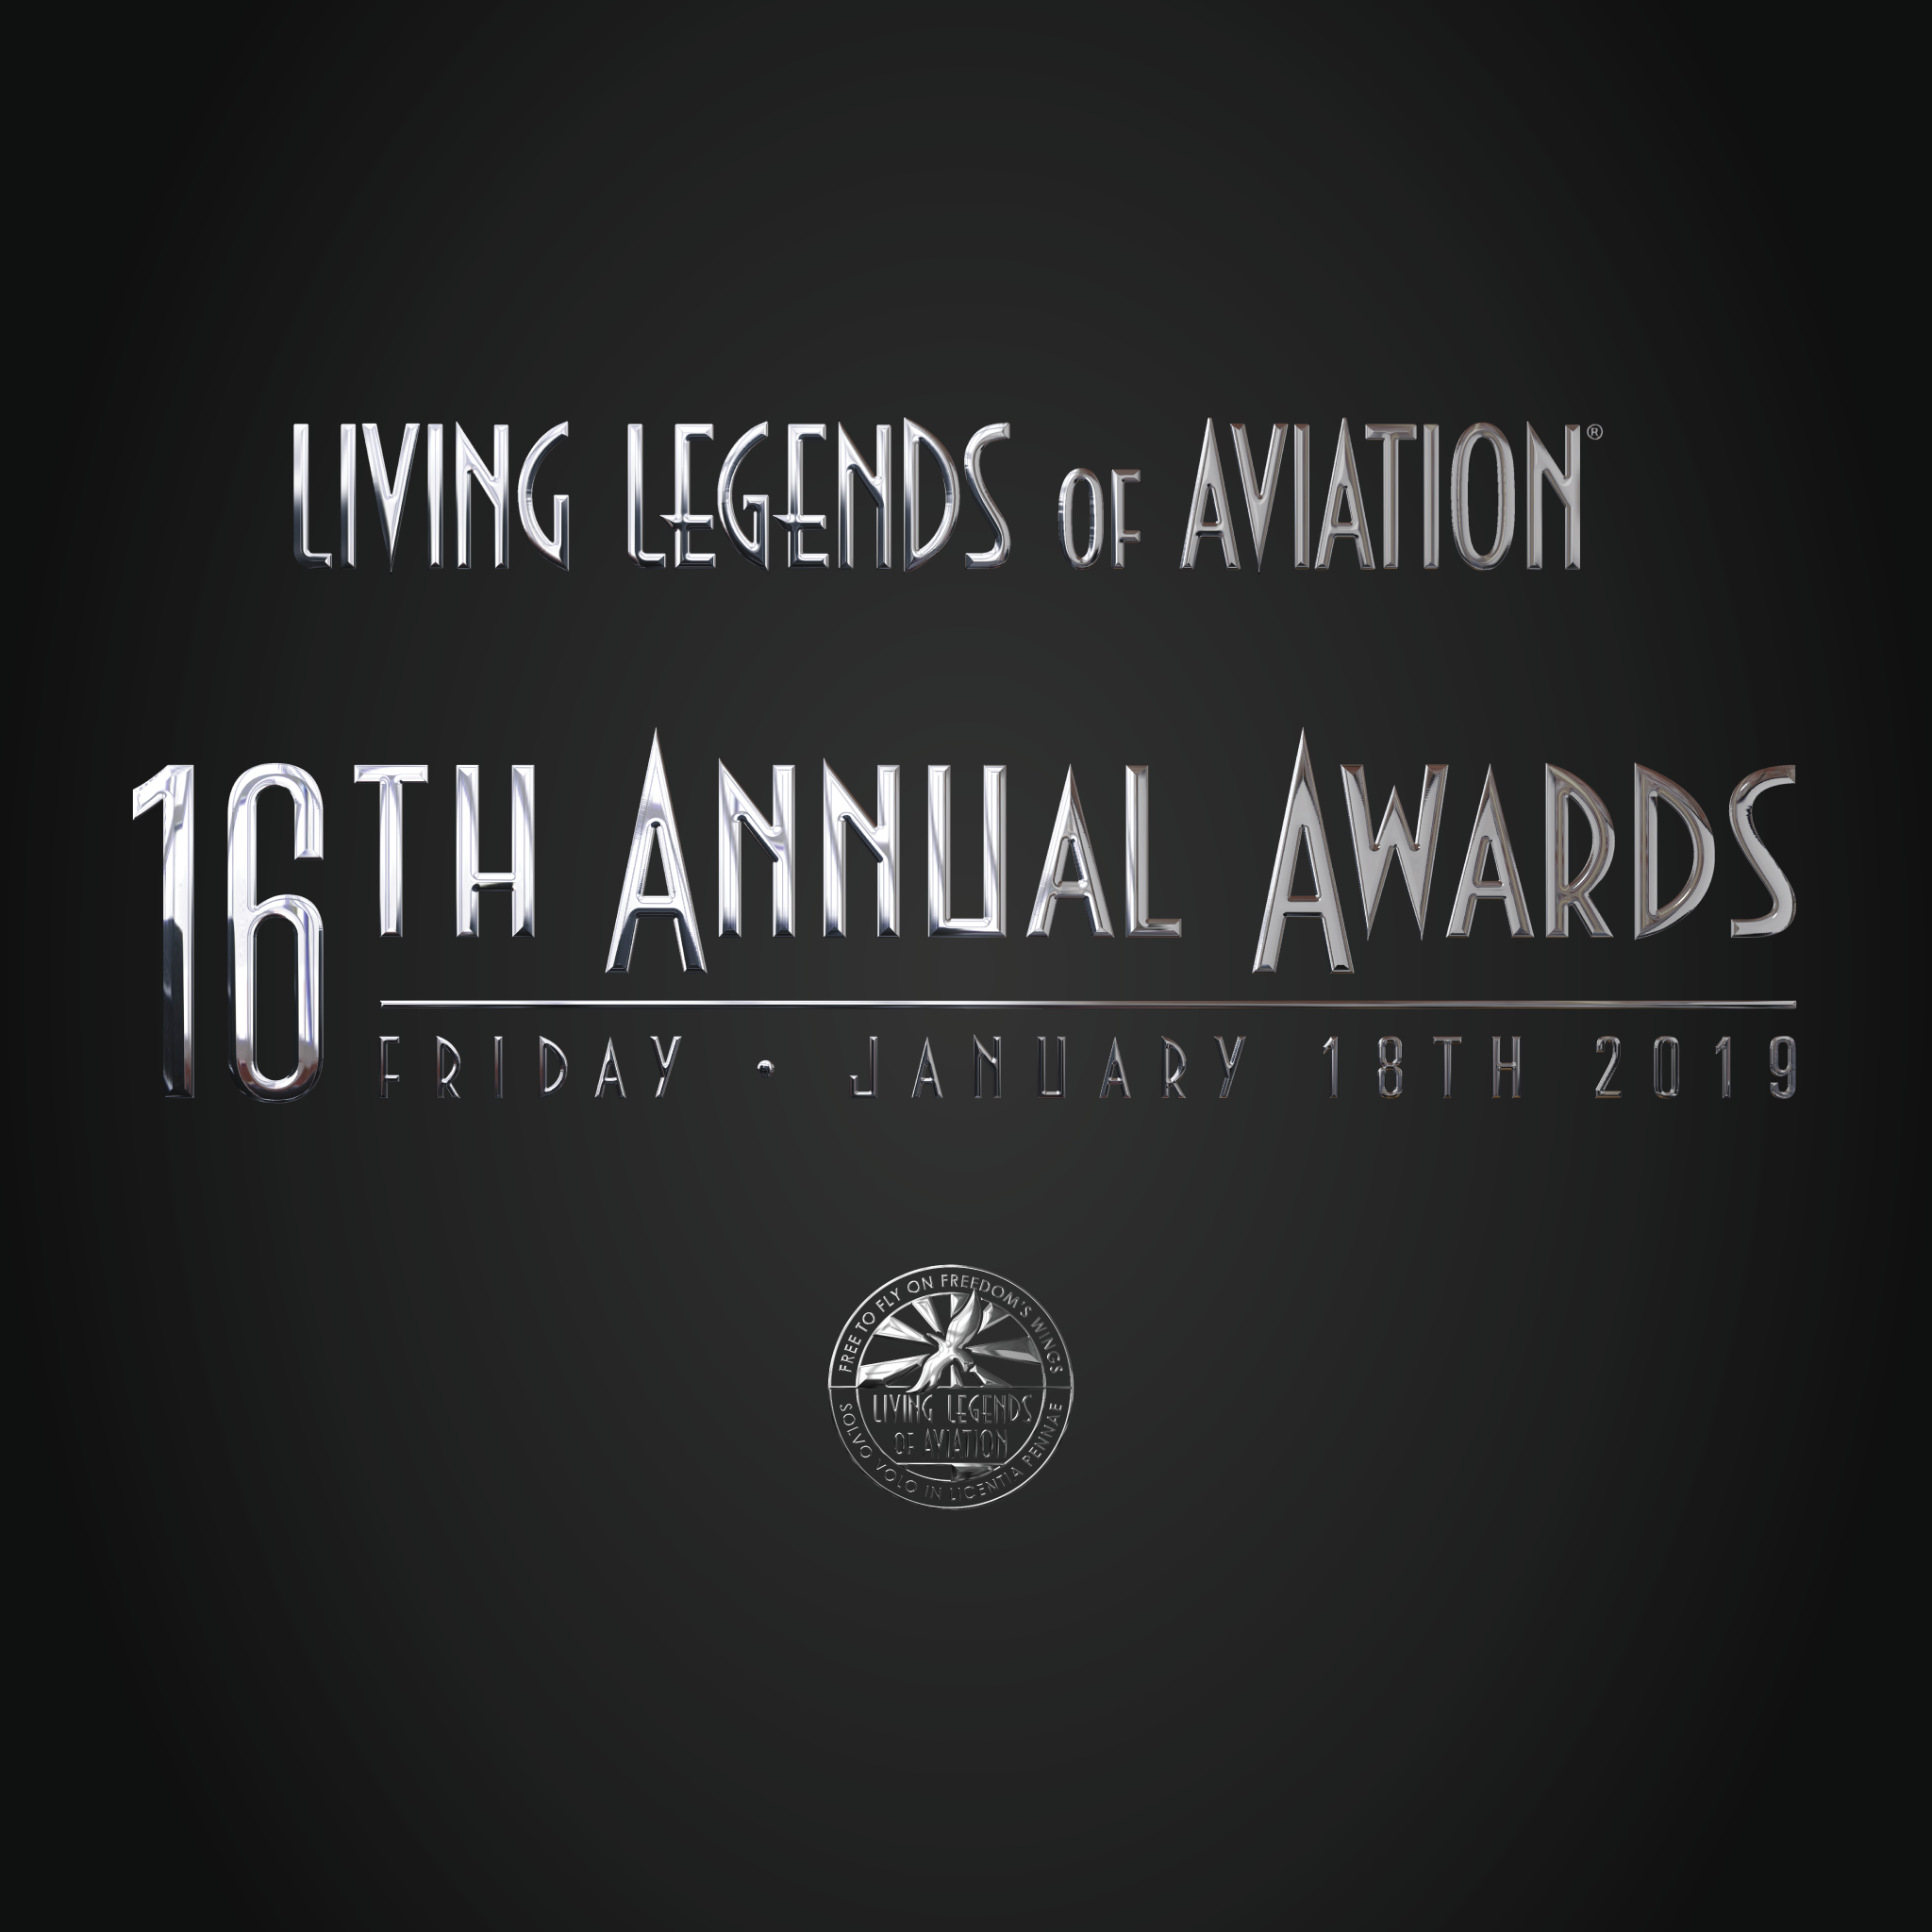 Jeff Bezos headlines newest class of inductees into Living Legends of Aviation